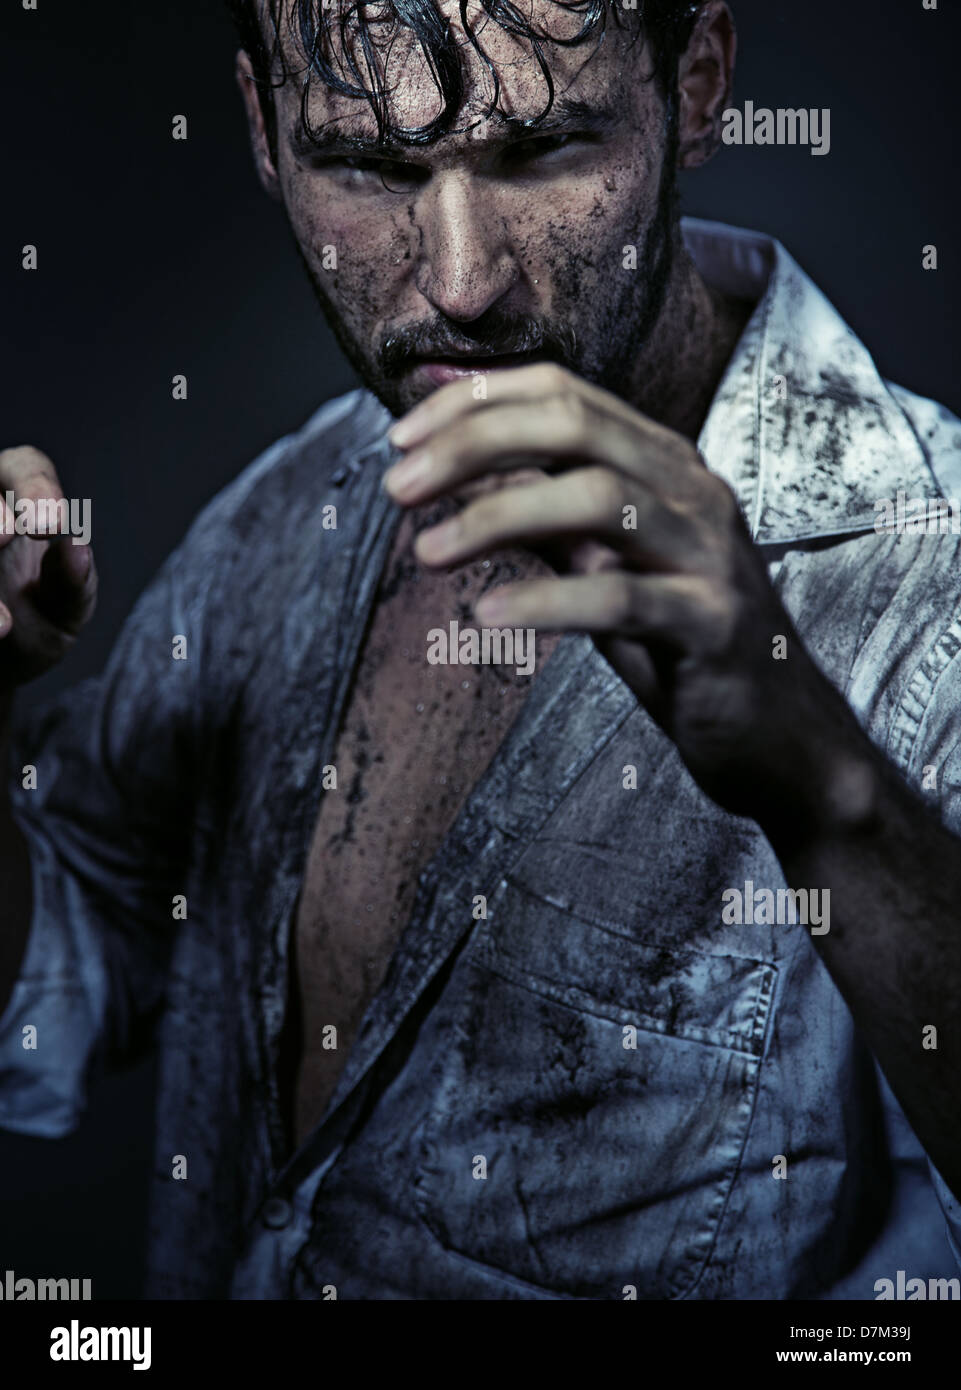 Dirty handsome guy prepareing to fight - Stock Image